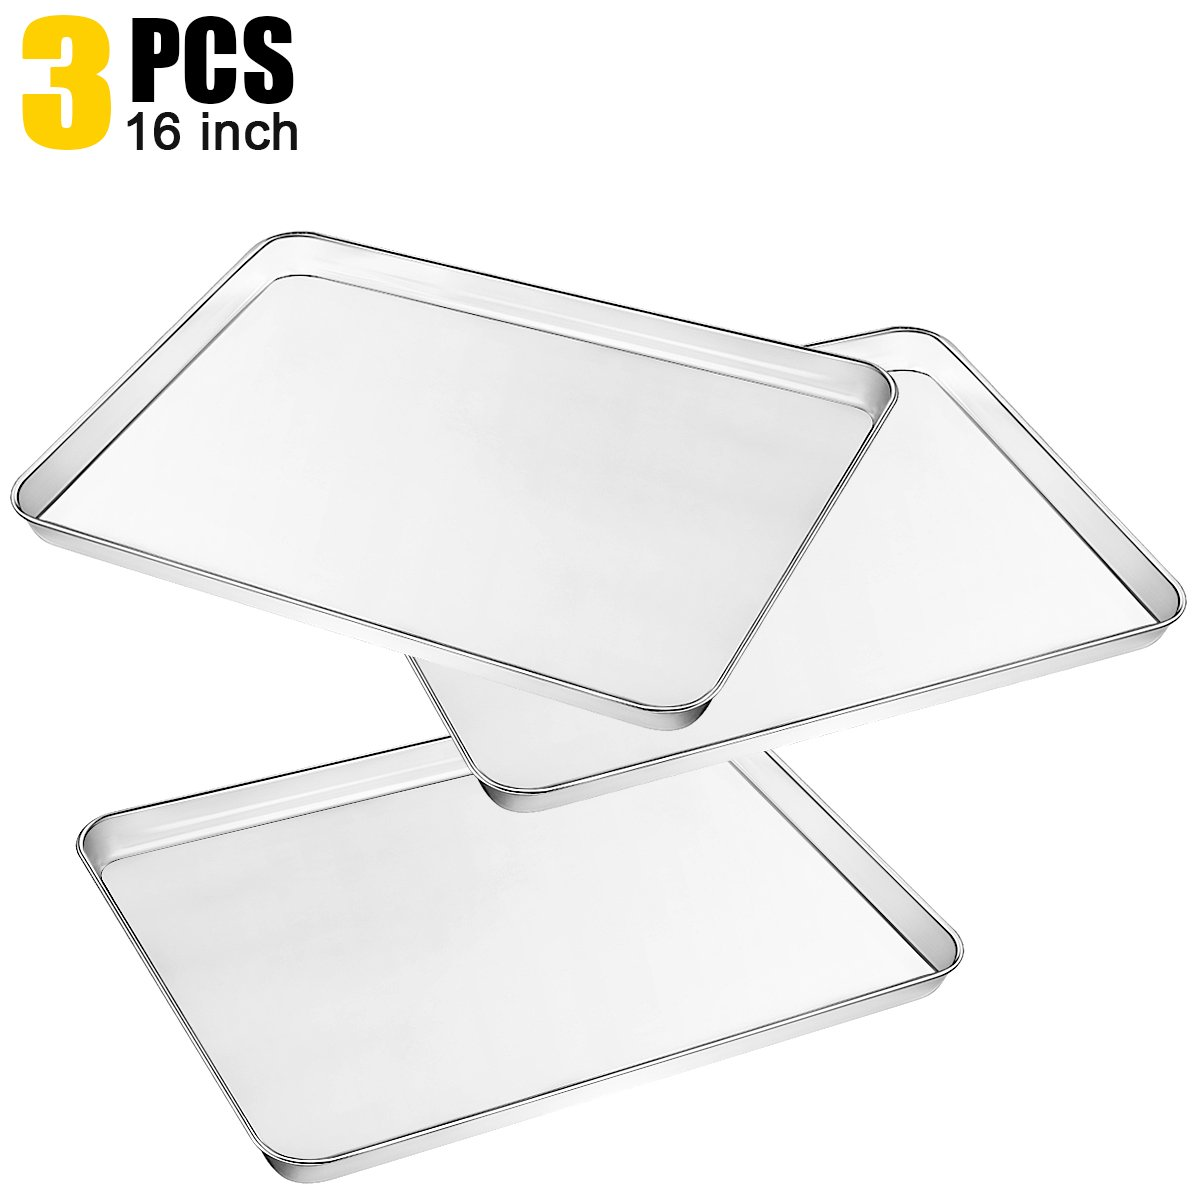 3 Piece Large Baking Sheet, Metal Stainless Steel Baking Pan Cookie Sheets for Toaster Oven, Tray Pans Non Toxic, Mirror polishing Easy Clean, Dishwasher Safe by Umite Chef, 16 x 12 x 1 inch